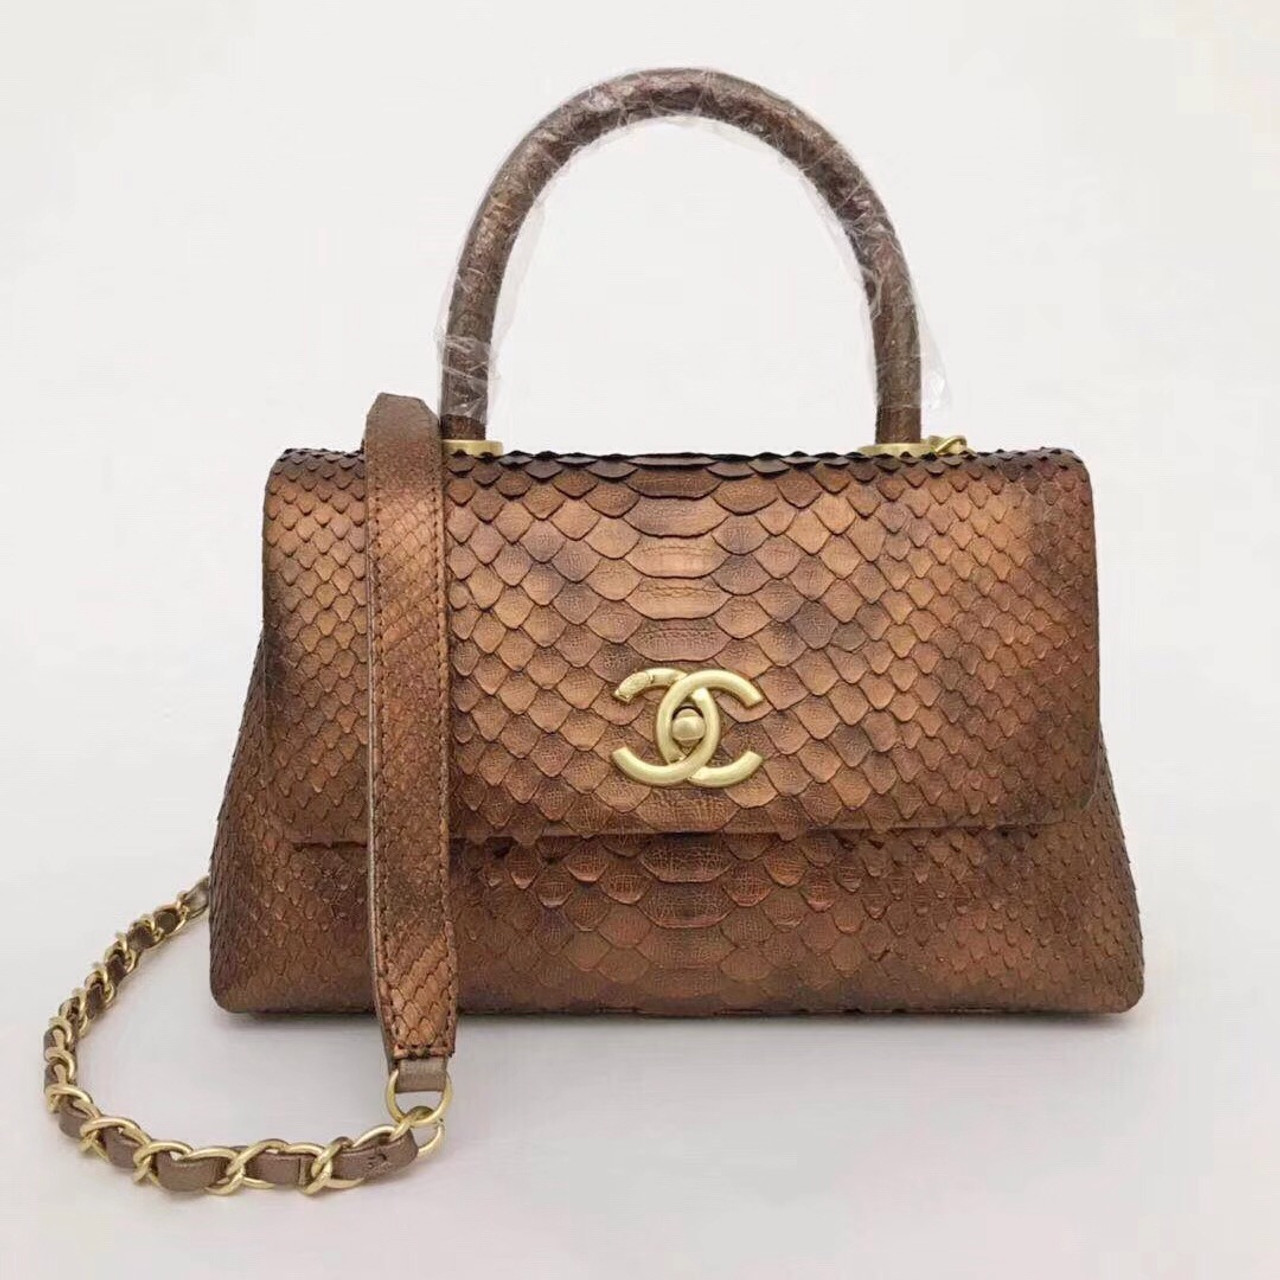 9bbc46a90314 Chanel Small Gold Python Flap Bag With Top Handle - Bella Vita Moda